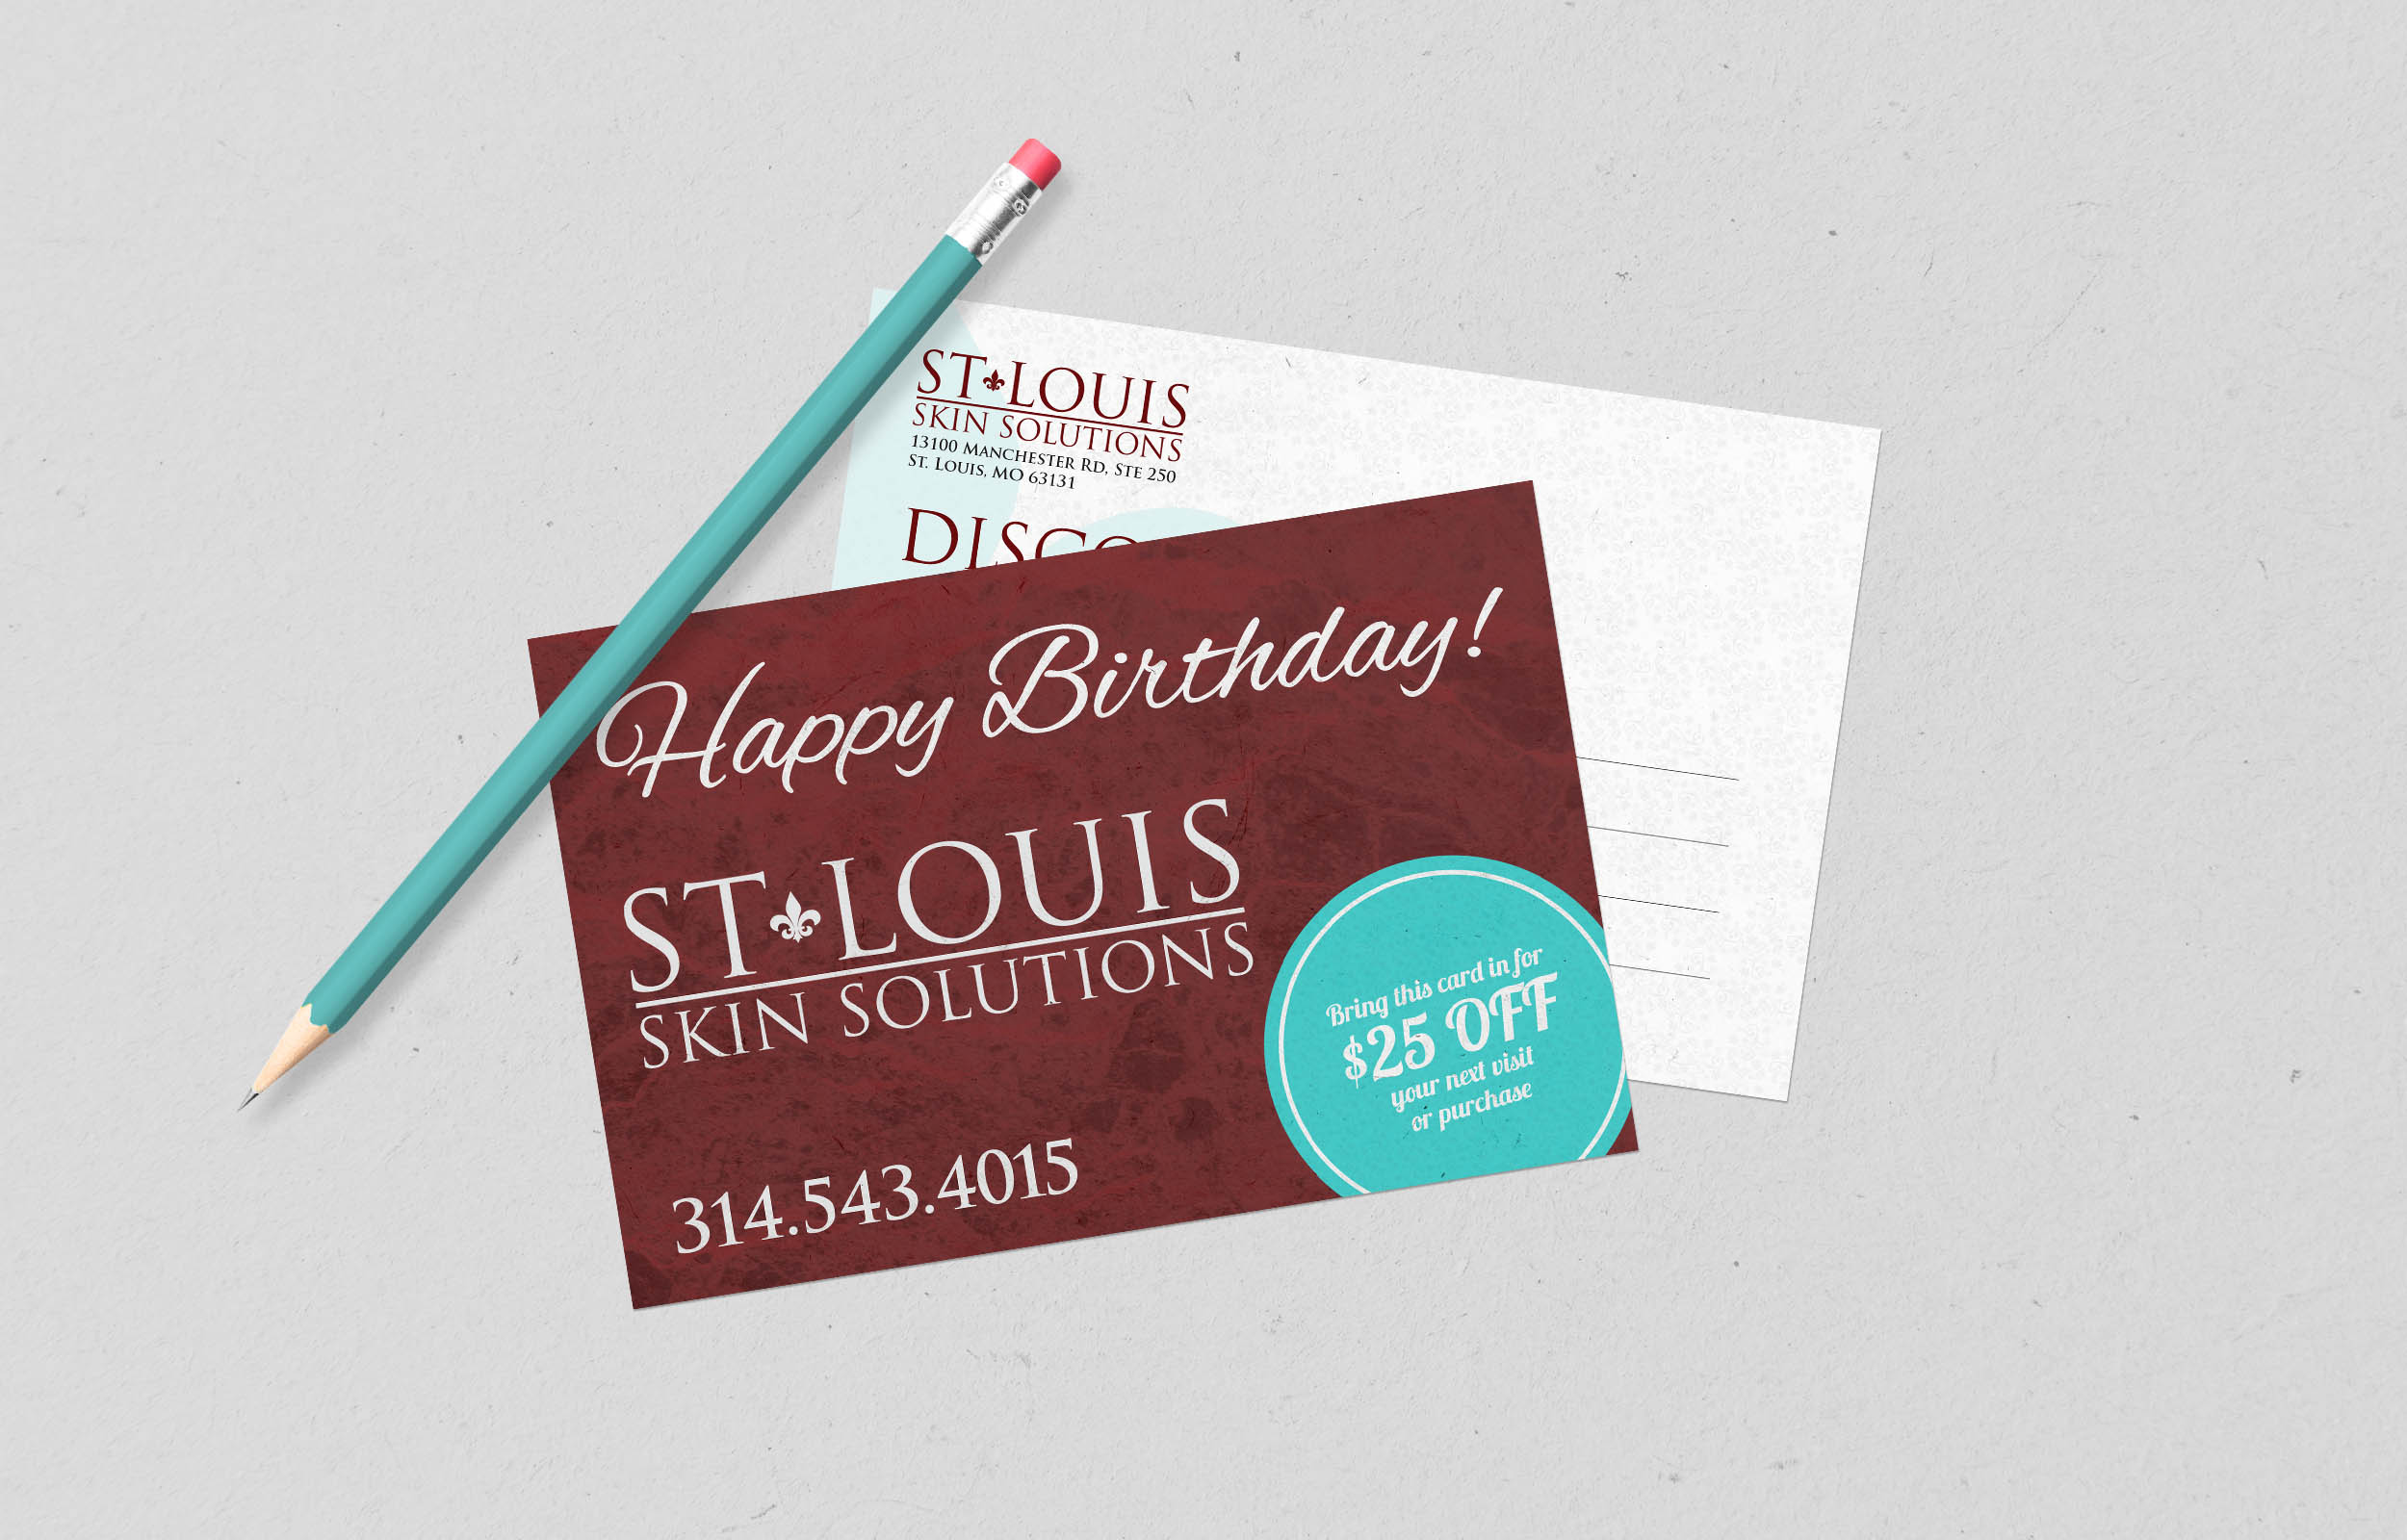 St. Louis Skin Solutions Post Card